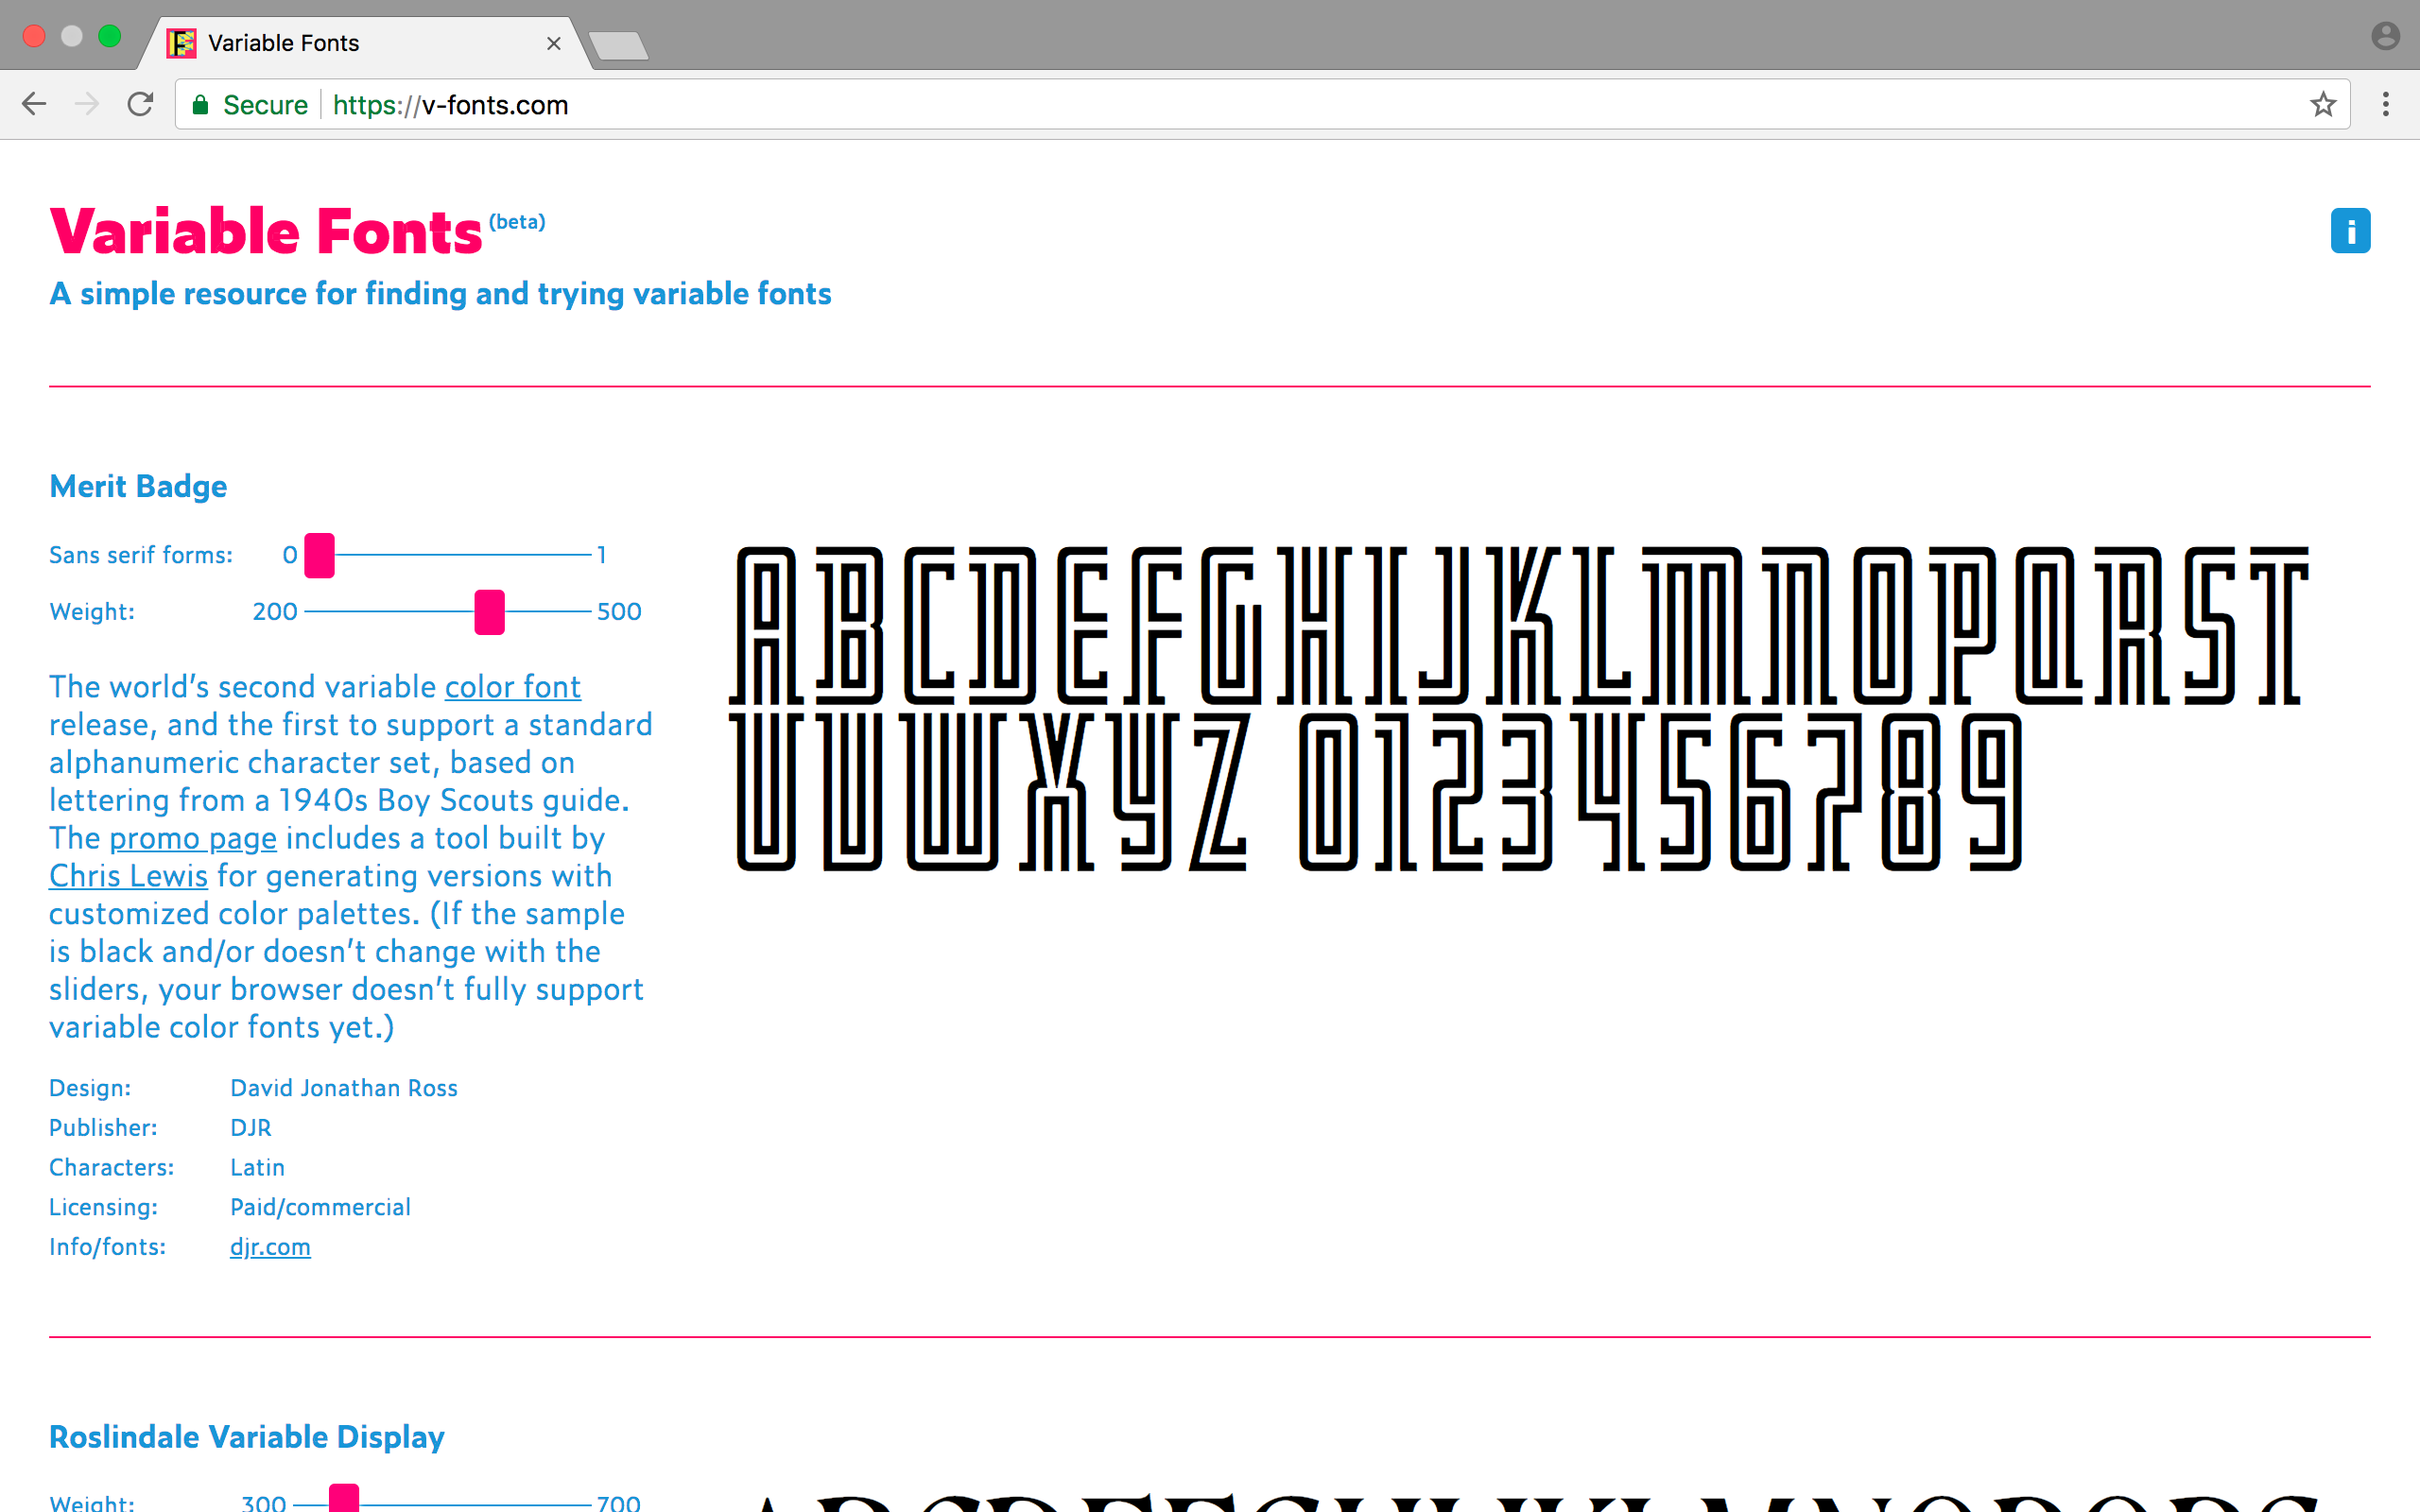 The website Variable Fonts provides information on variable fonts